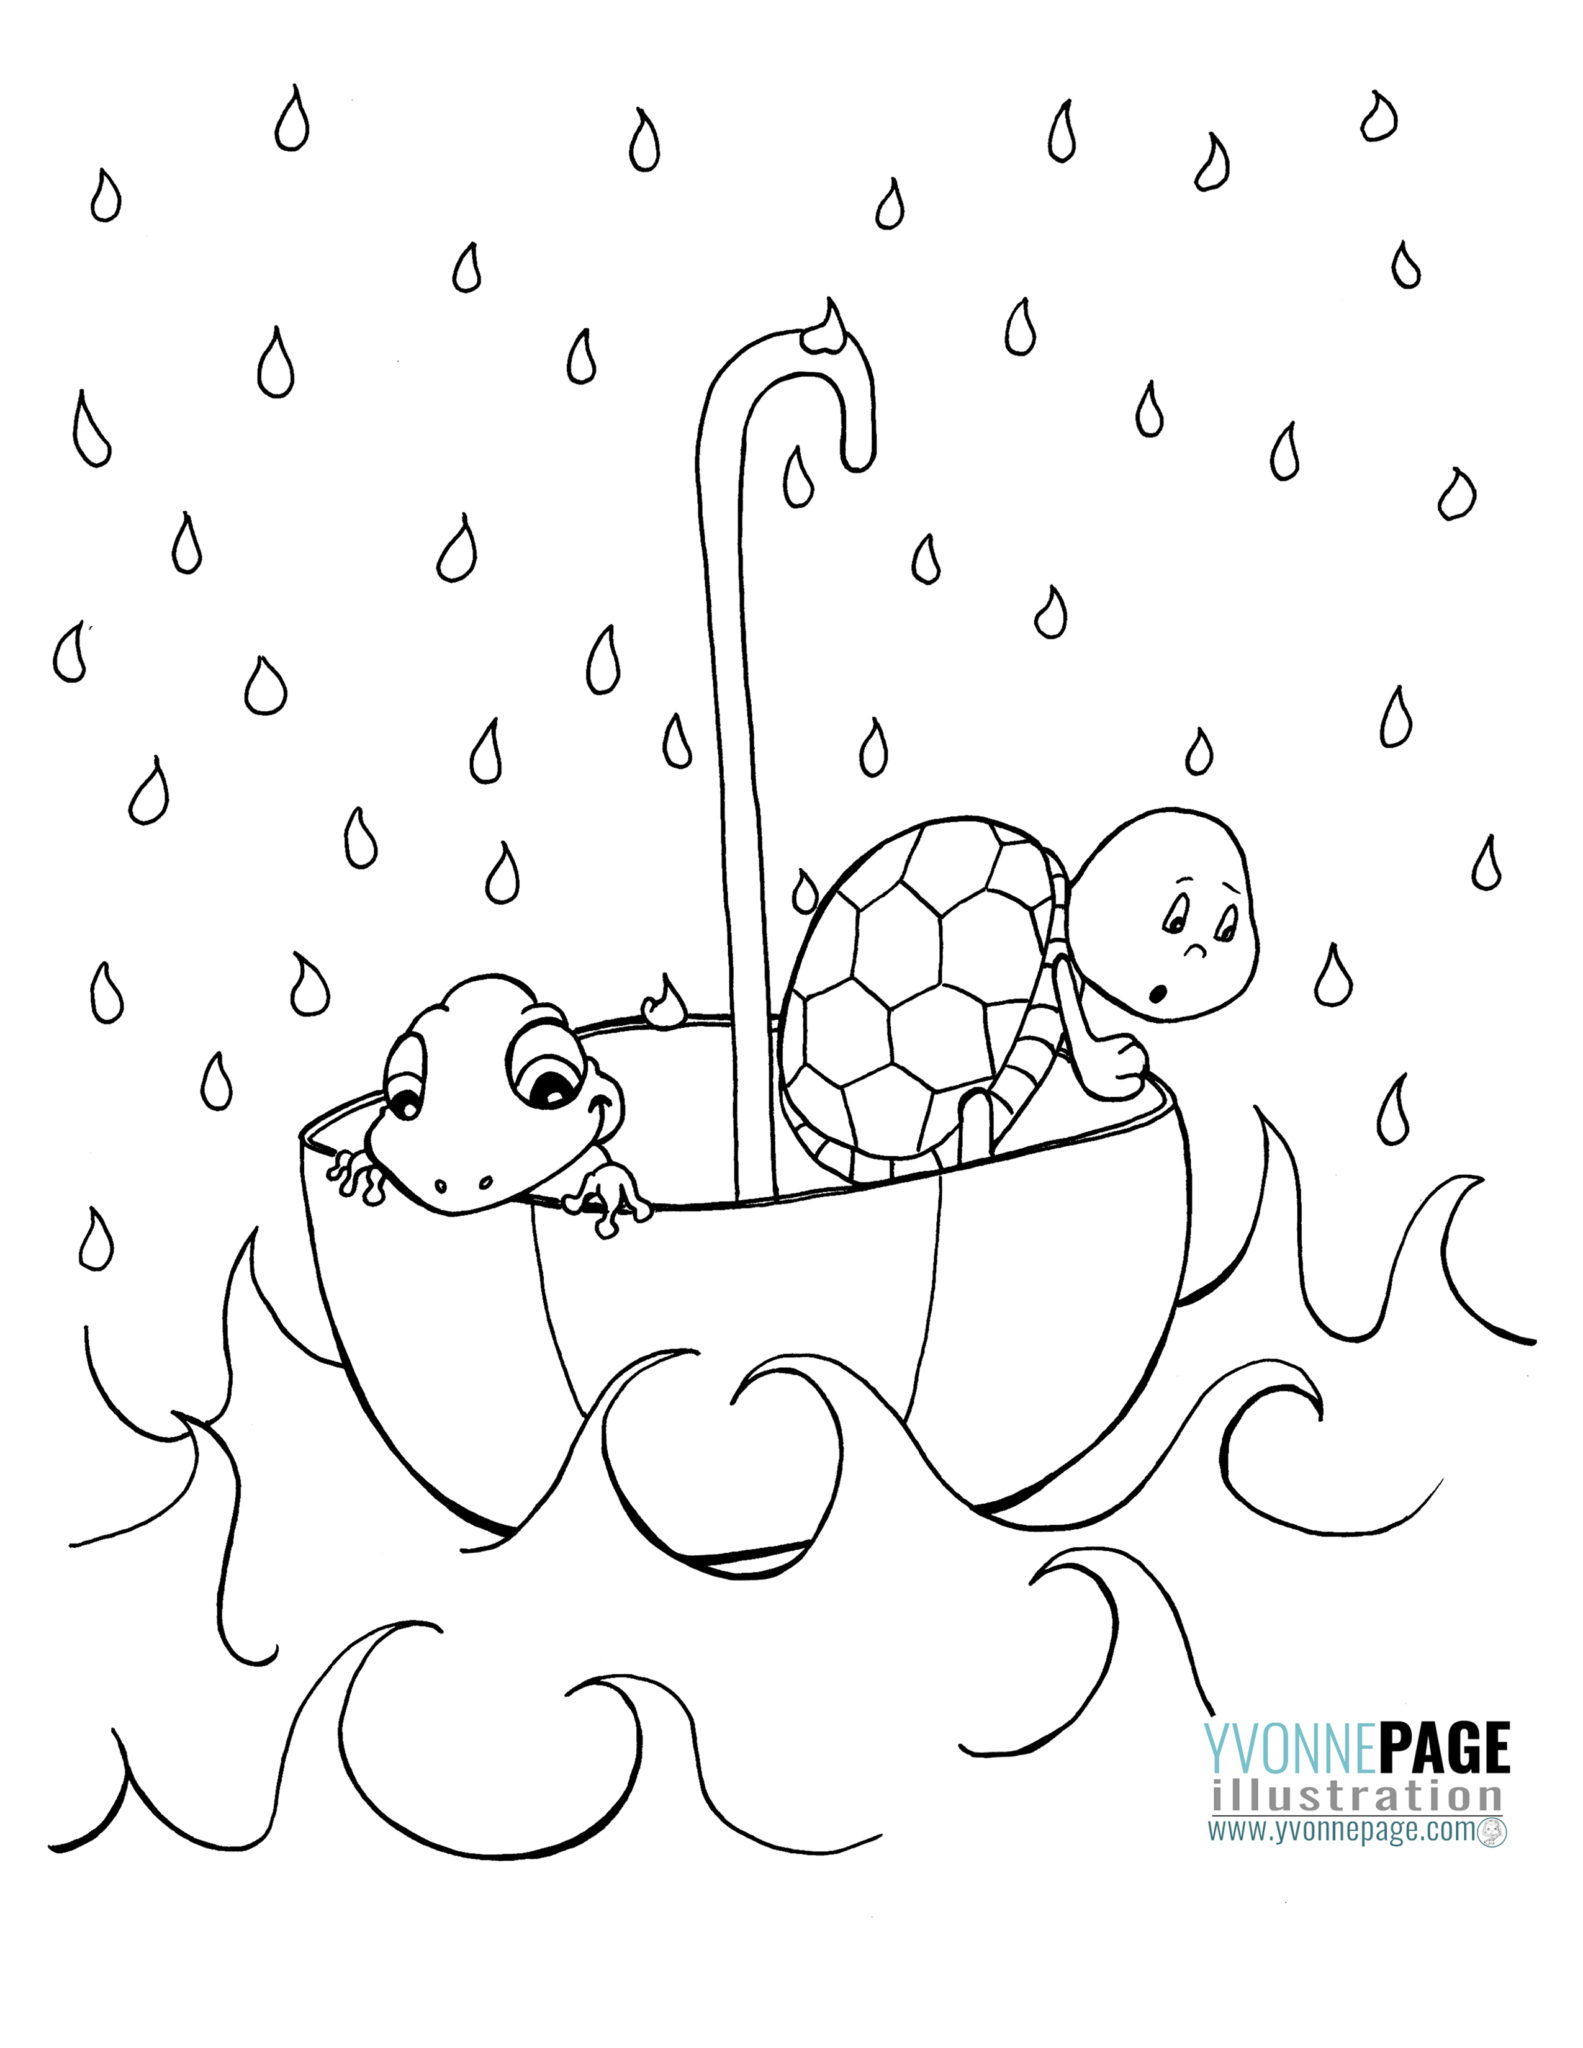 Roman Sol R Coloring Page At Getcolorings